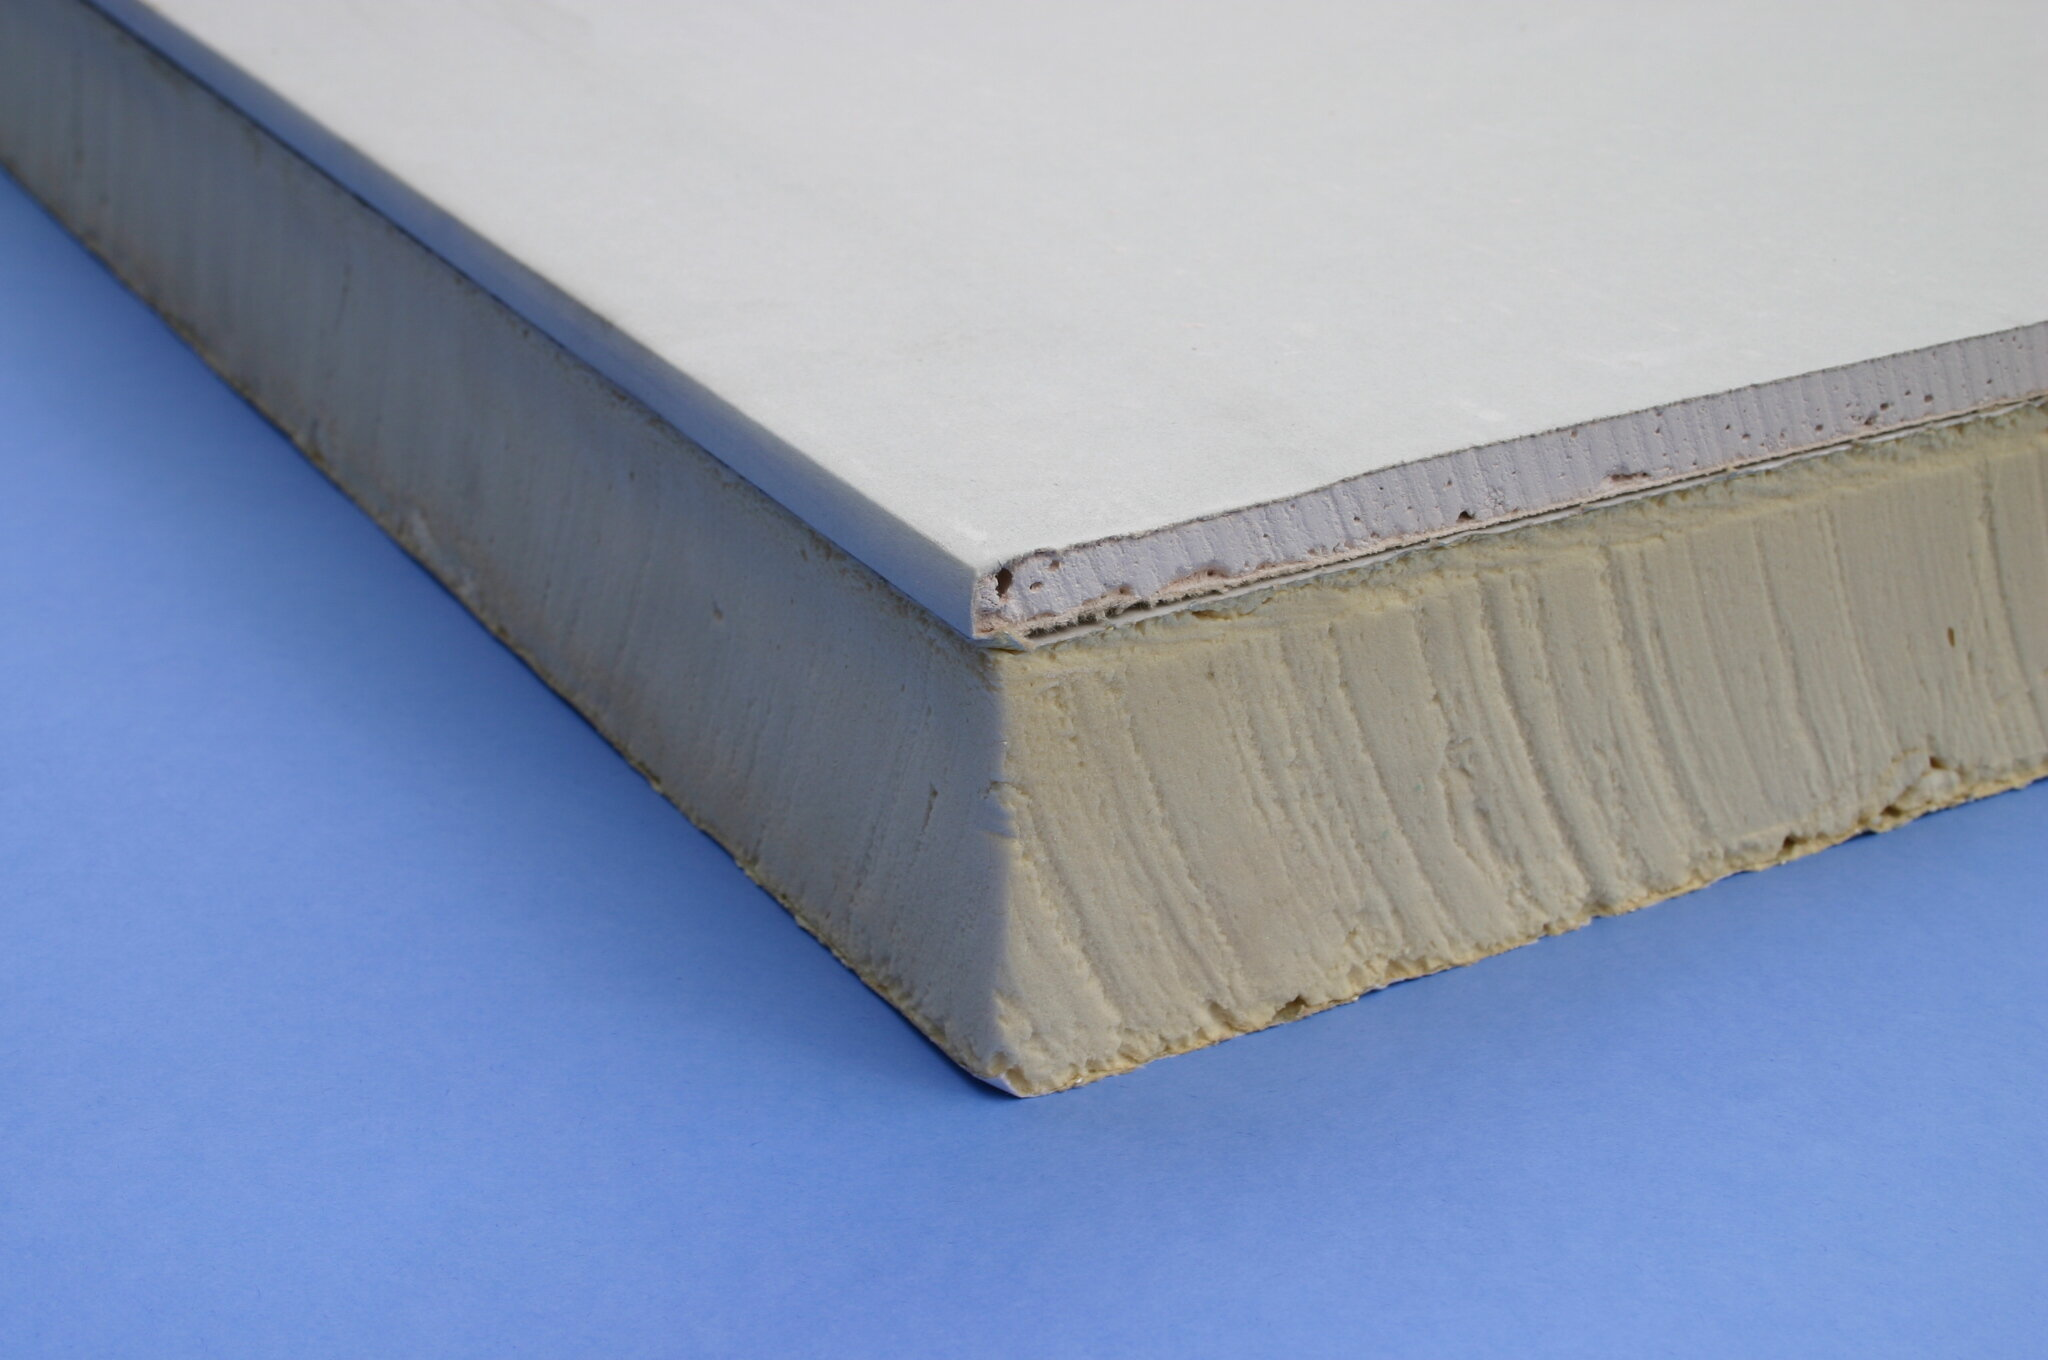 Xtratherm Insulated Plasterboard 83mm - 2438 x 1200mm